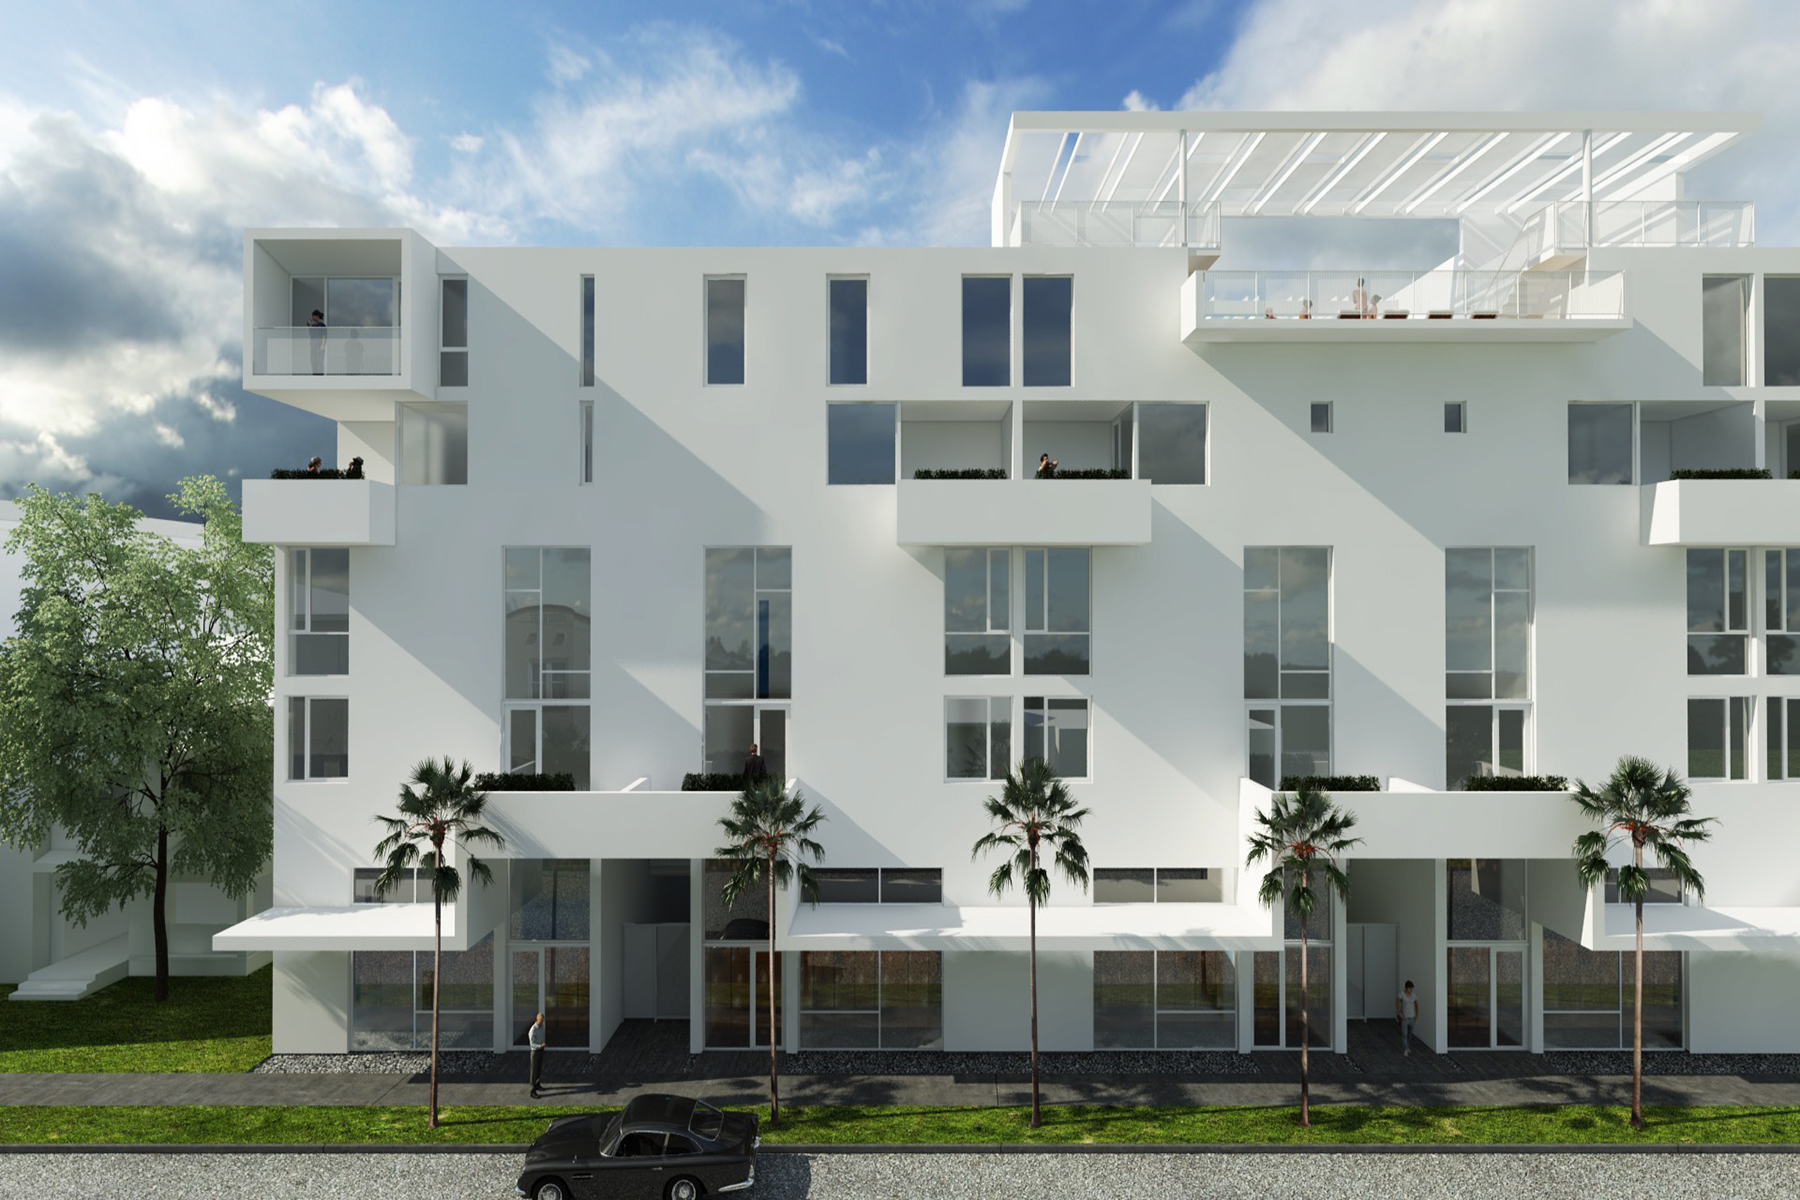 Condominium for Sale at RISDON ON 5TH 1350 5th St 304 Rosemary District, Sarasota, Florida, 34236 United States